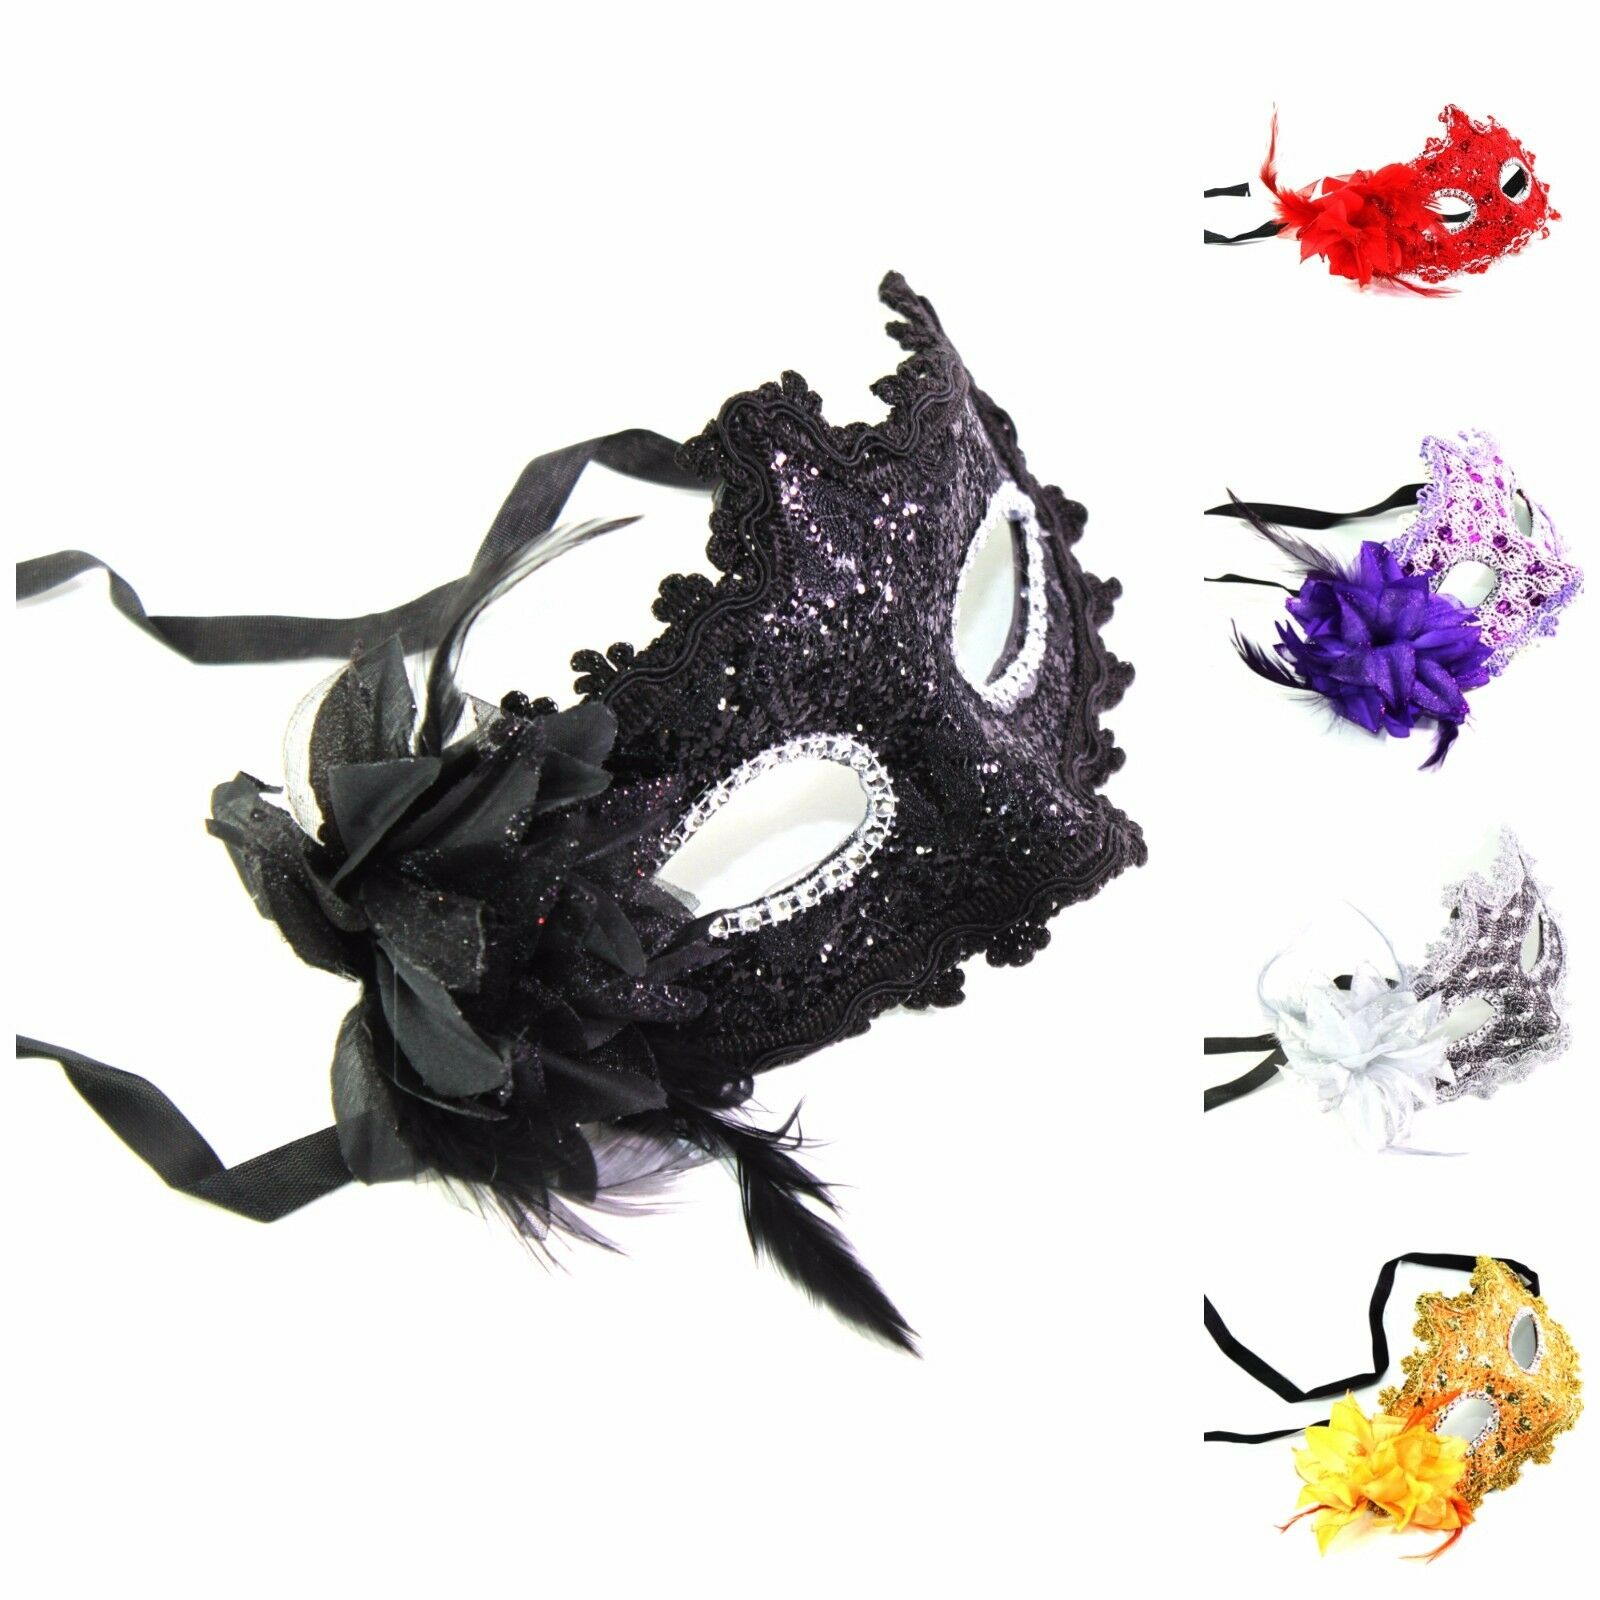 cfa892a00ced Details about Women's Flower Feather Lace Eye Mask Masquerade Ball Party  Halloween Costume